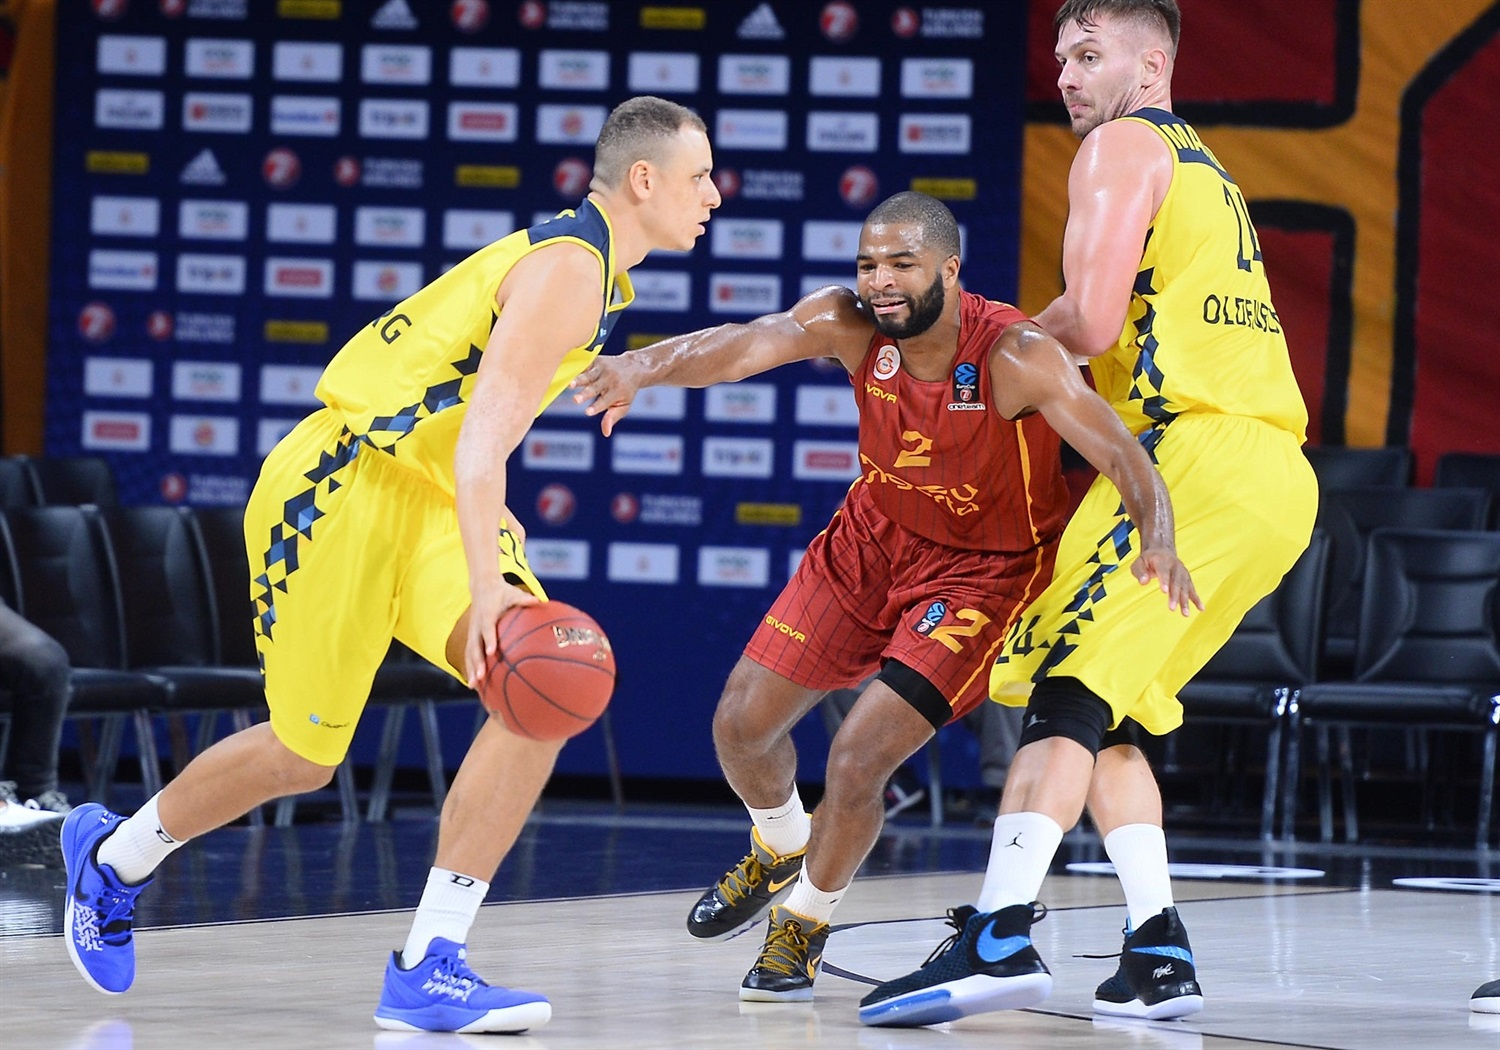 Robin Amaize - EWE Baskets Oldenburg (photo Galatasaray) - EC19